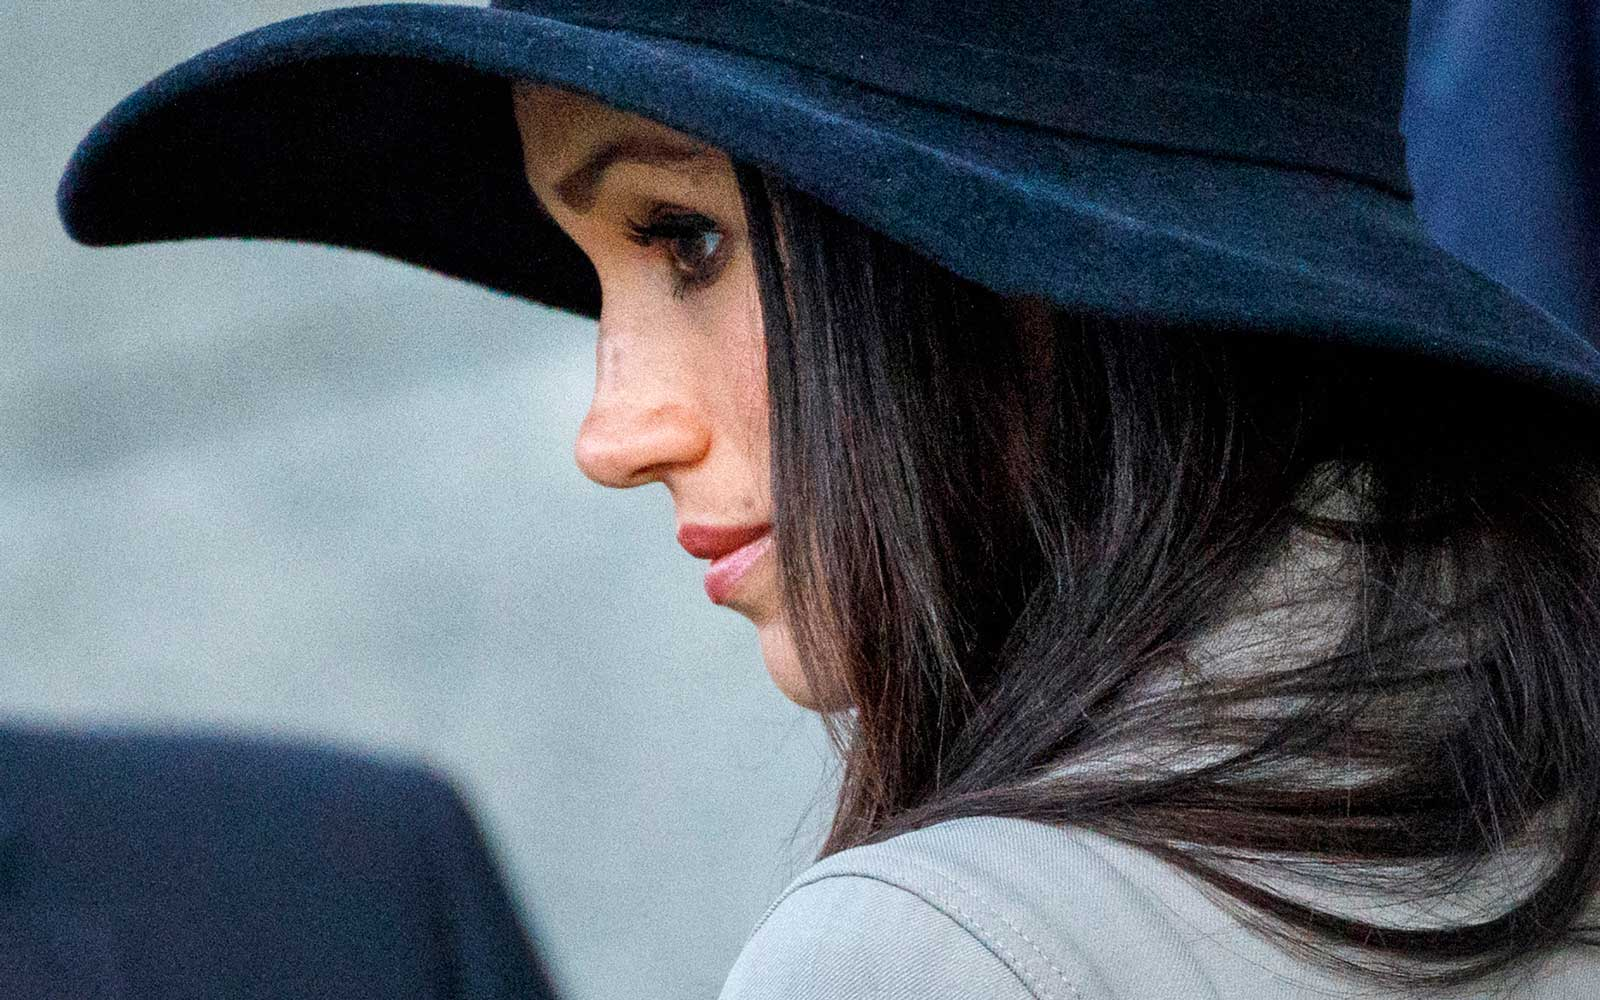 Megan Markle attends Anzac day services